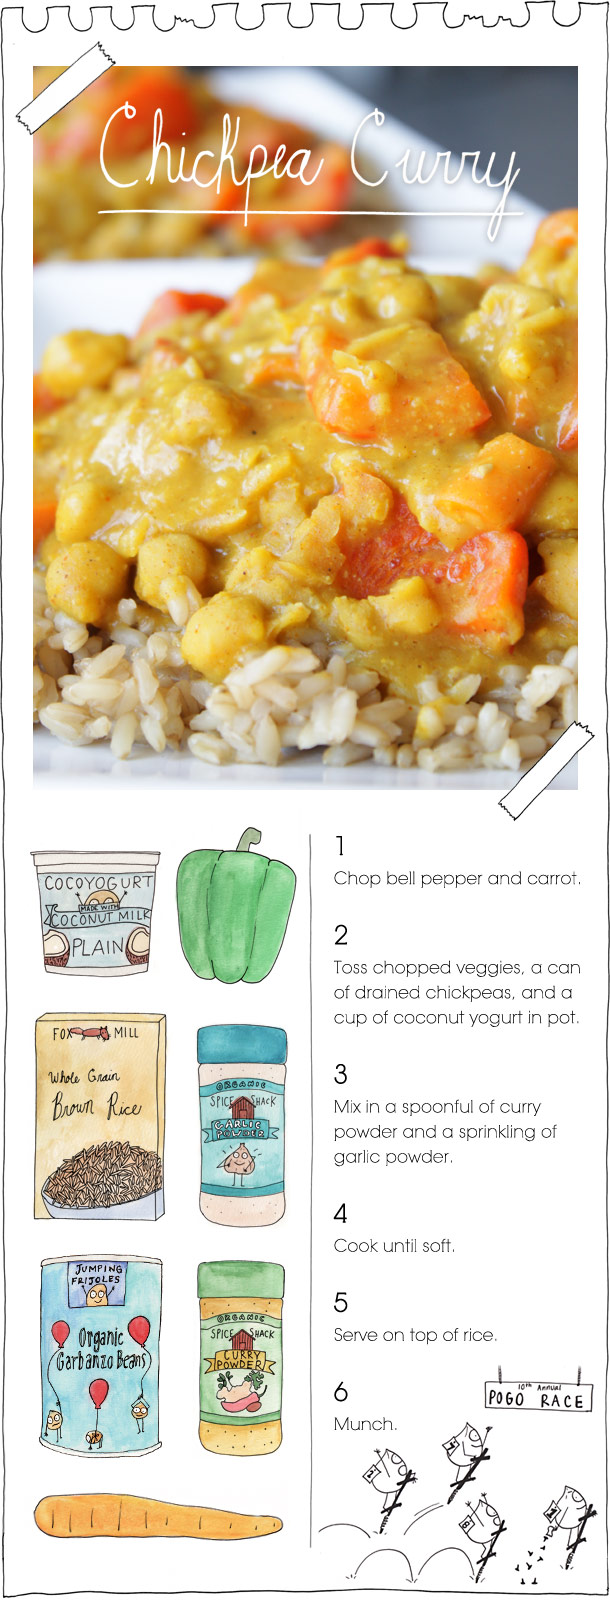 Easy Vegan Chickpea Curry Recipe | Dinner Recipes Healthy, Dinner Recipes Easy, Dinner Recipes For Family, Dinner Recipes Vegan, Dinner Recipes Chickpea, Dinner Recipes Curry, Dinner Recipes Instant Pot #vegan #chickpea #curry #chickpeacurry #veganrecipe #vegandinner #dinnerrecipe #dinner #easydinner #easydinnerrecipe